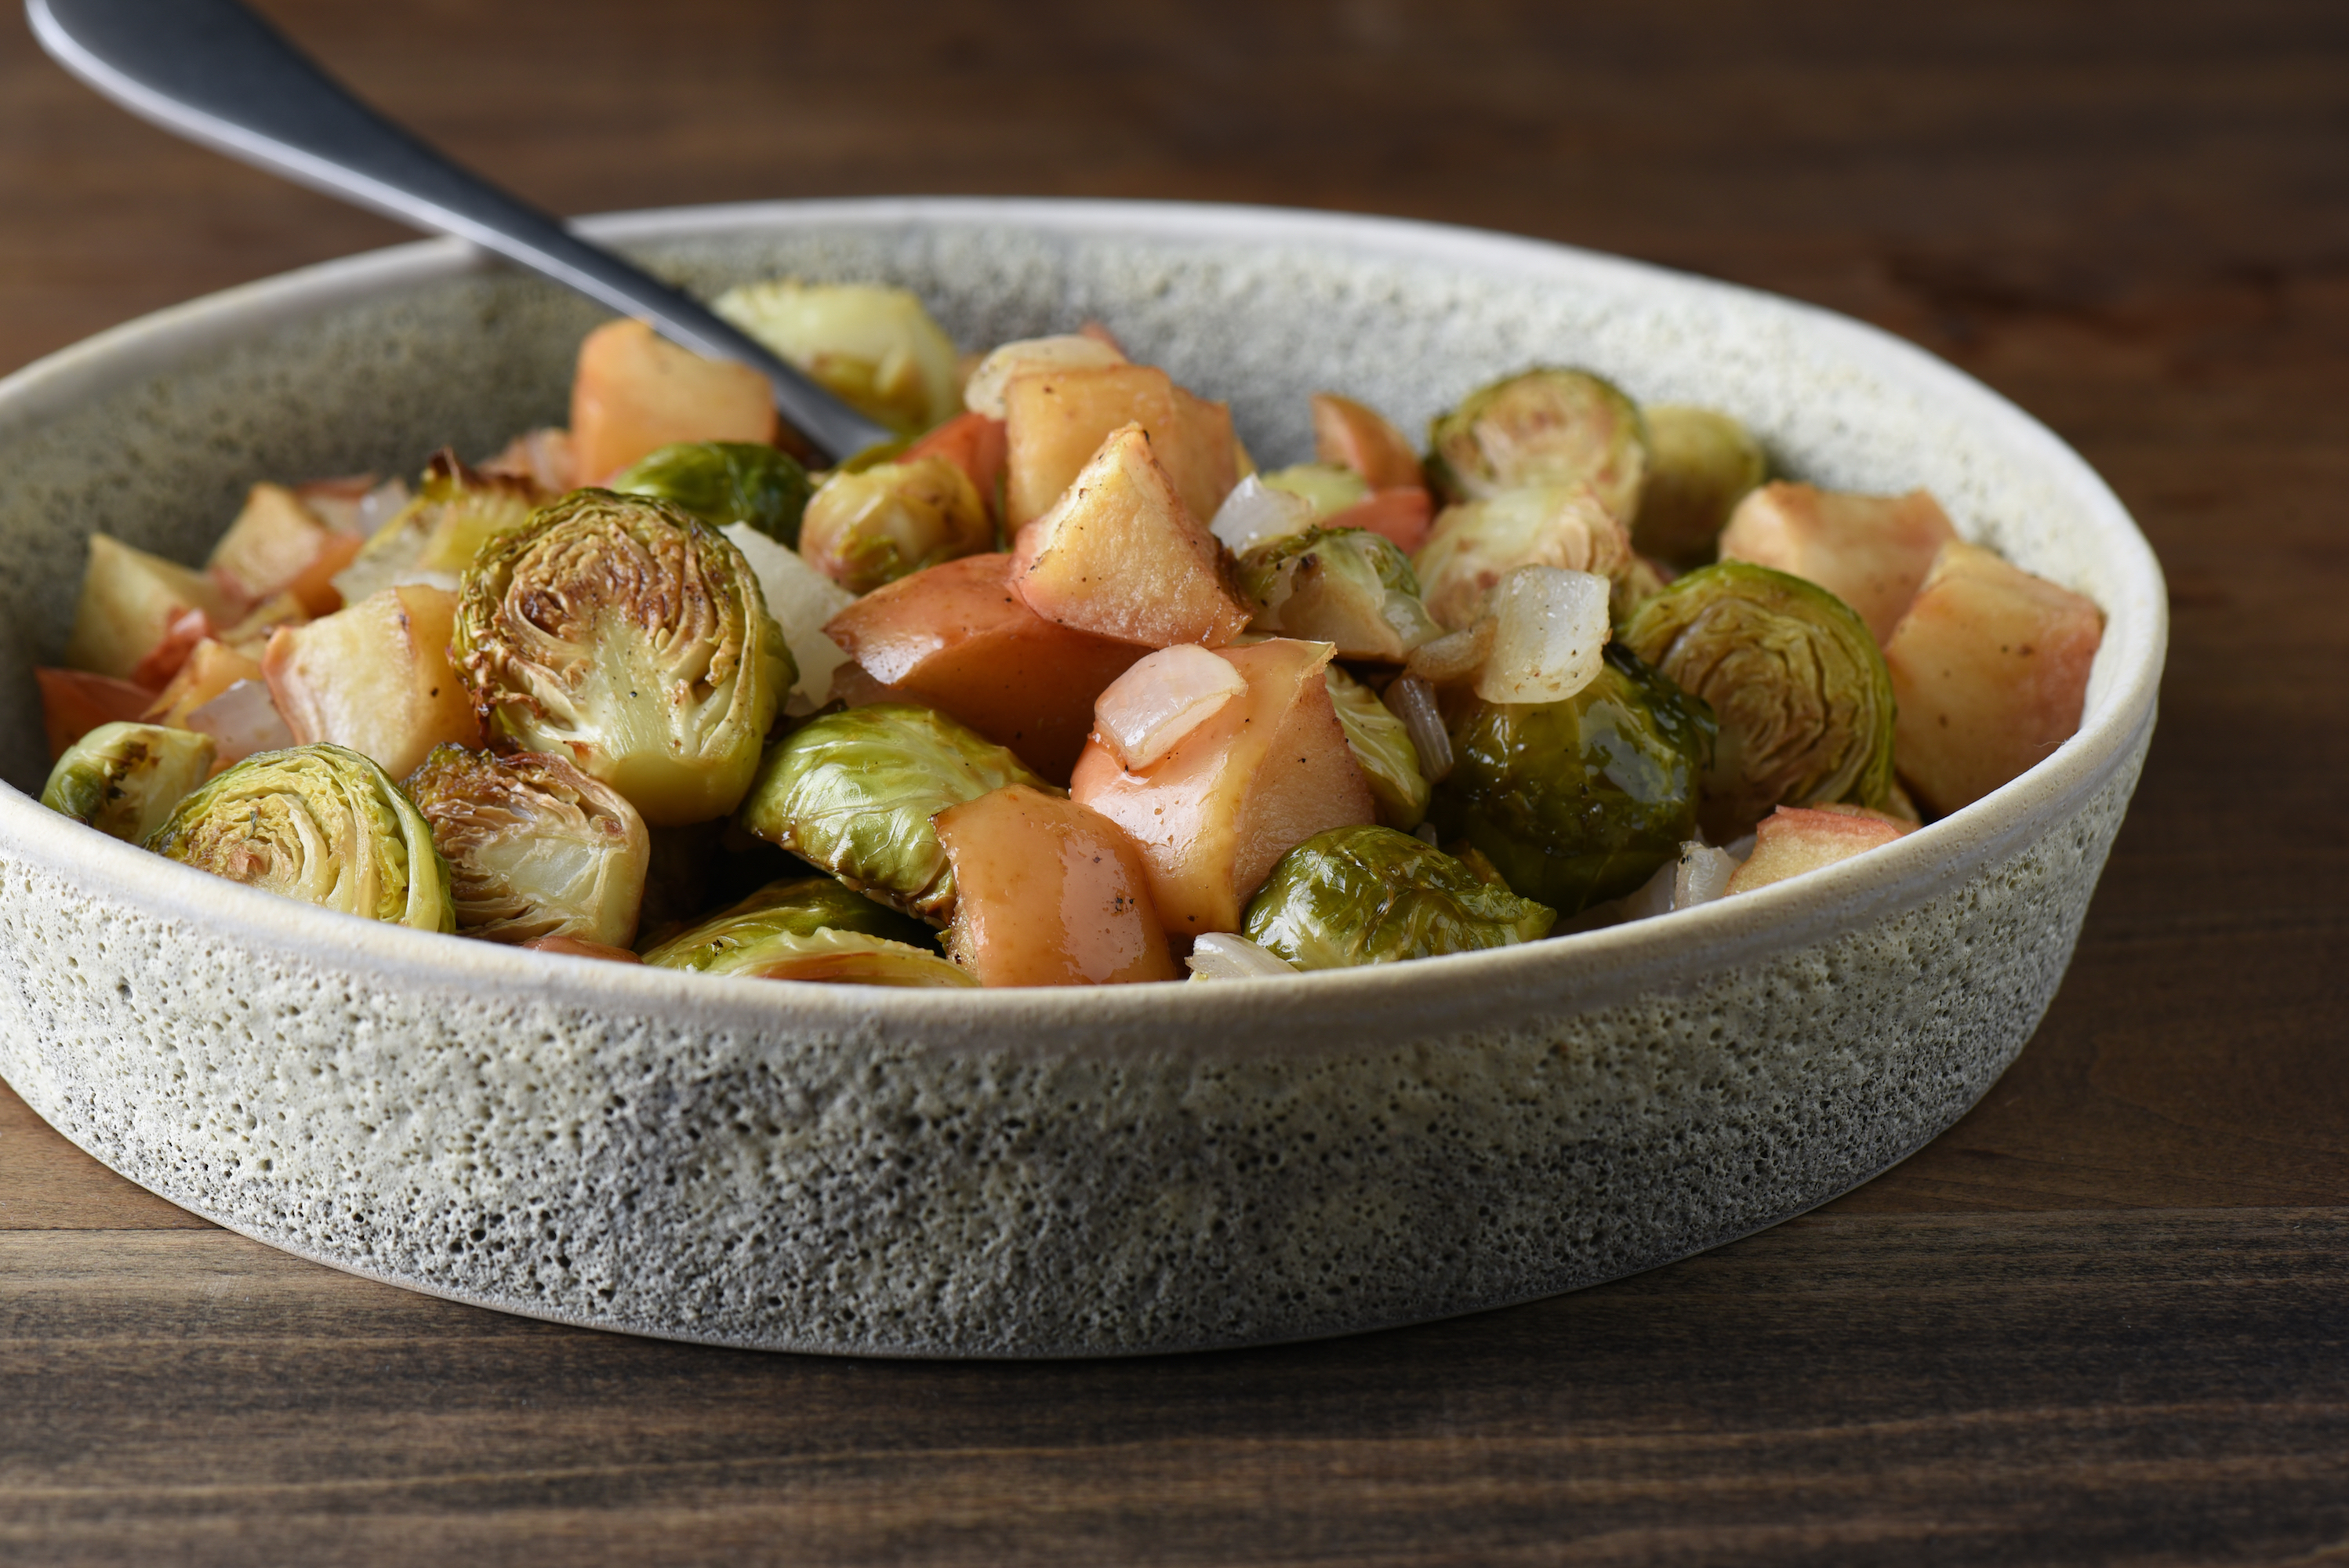 Roasted Apples & Brussels Sprouts